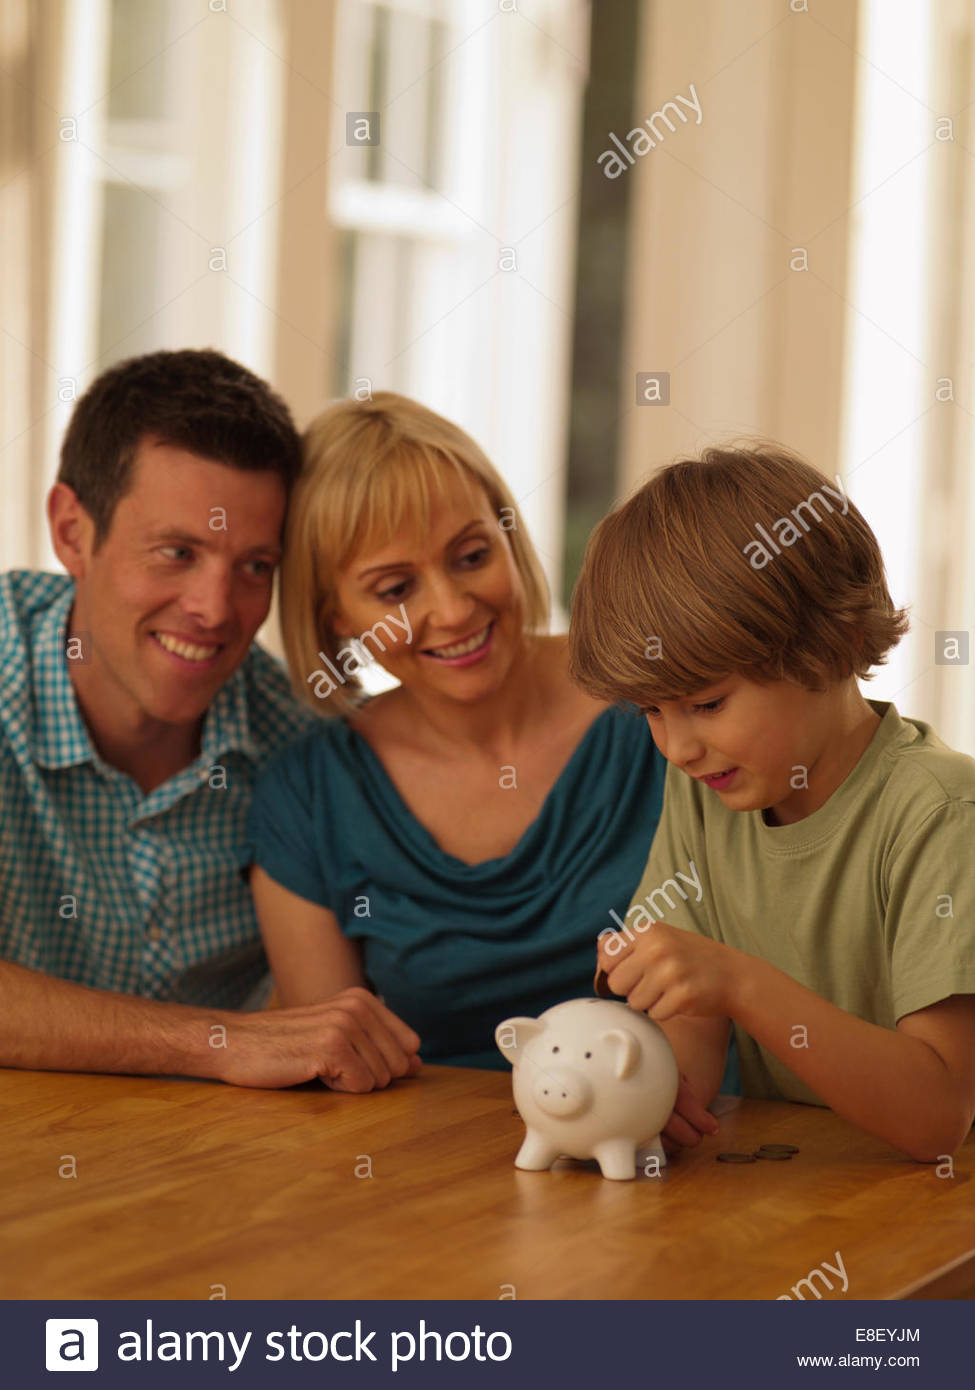 Parents watching son putting coin into piggy bank - Stock Image